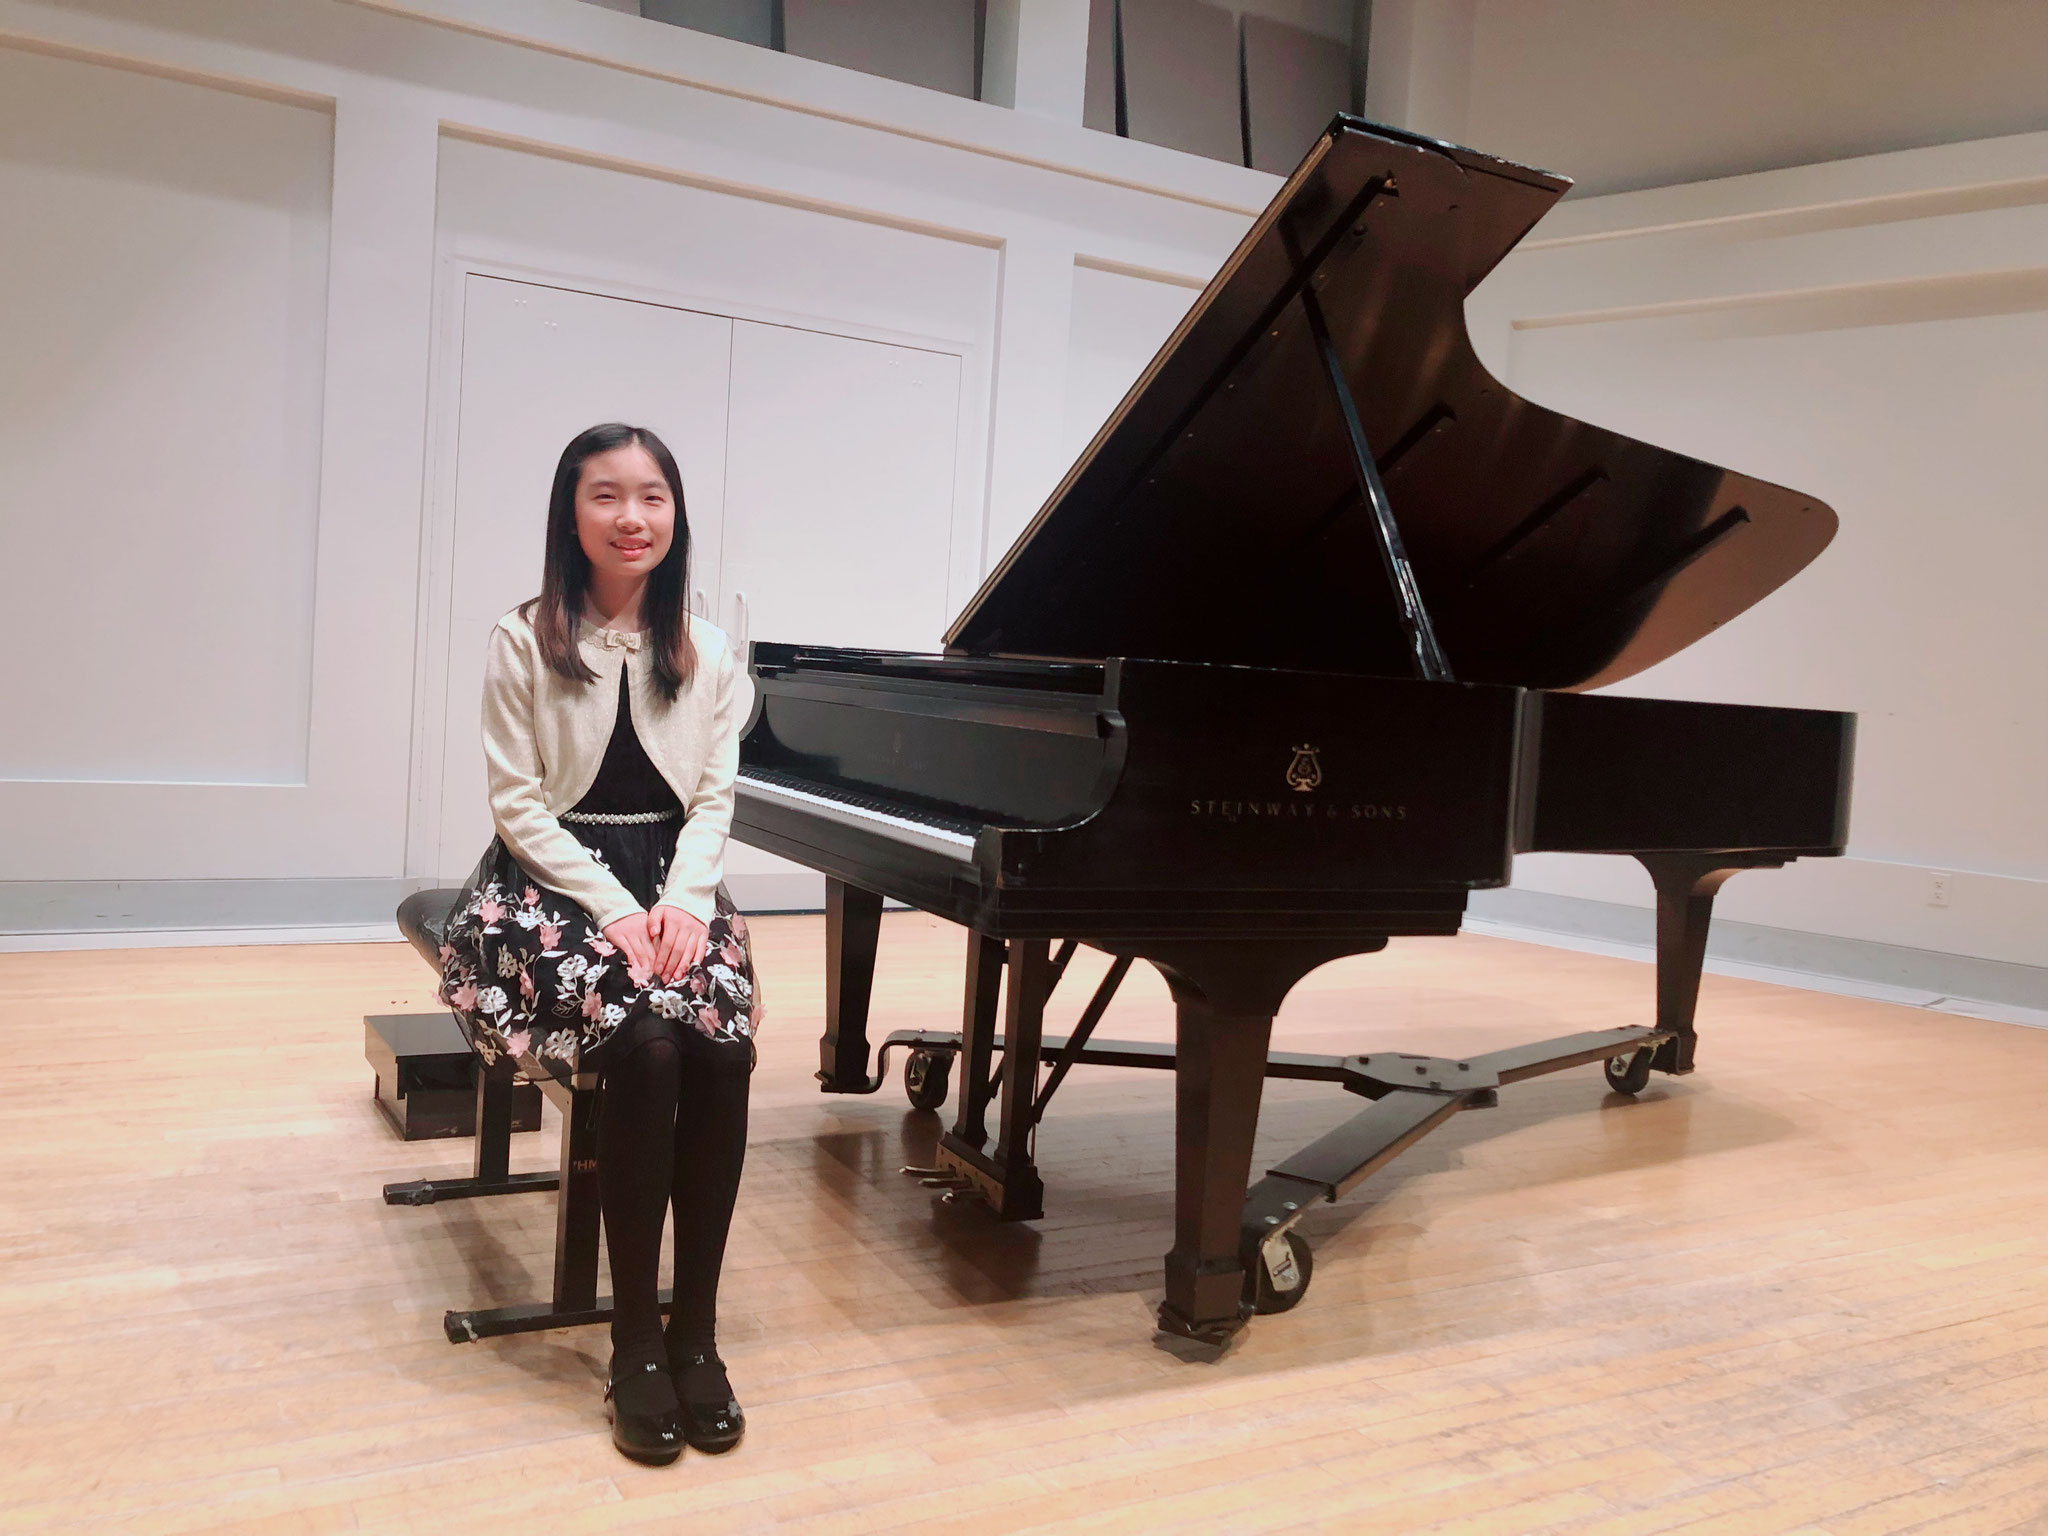 SUYEON HEO WON 1st PRIZE AT THE ELITE INTERNATIONAL PIANO COMPETITION!